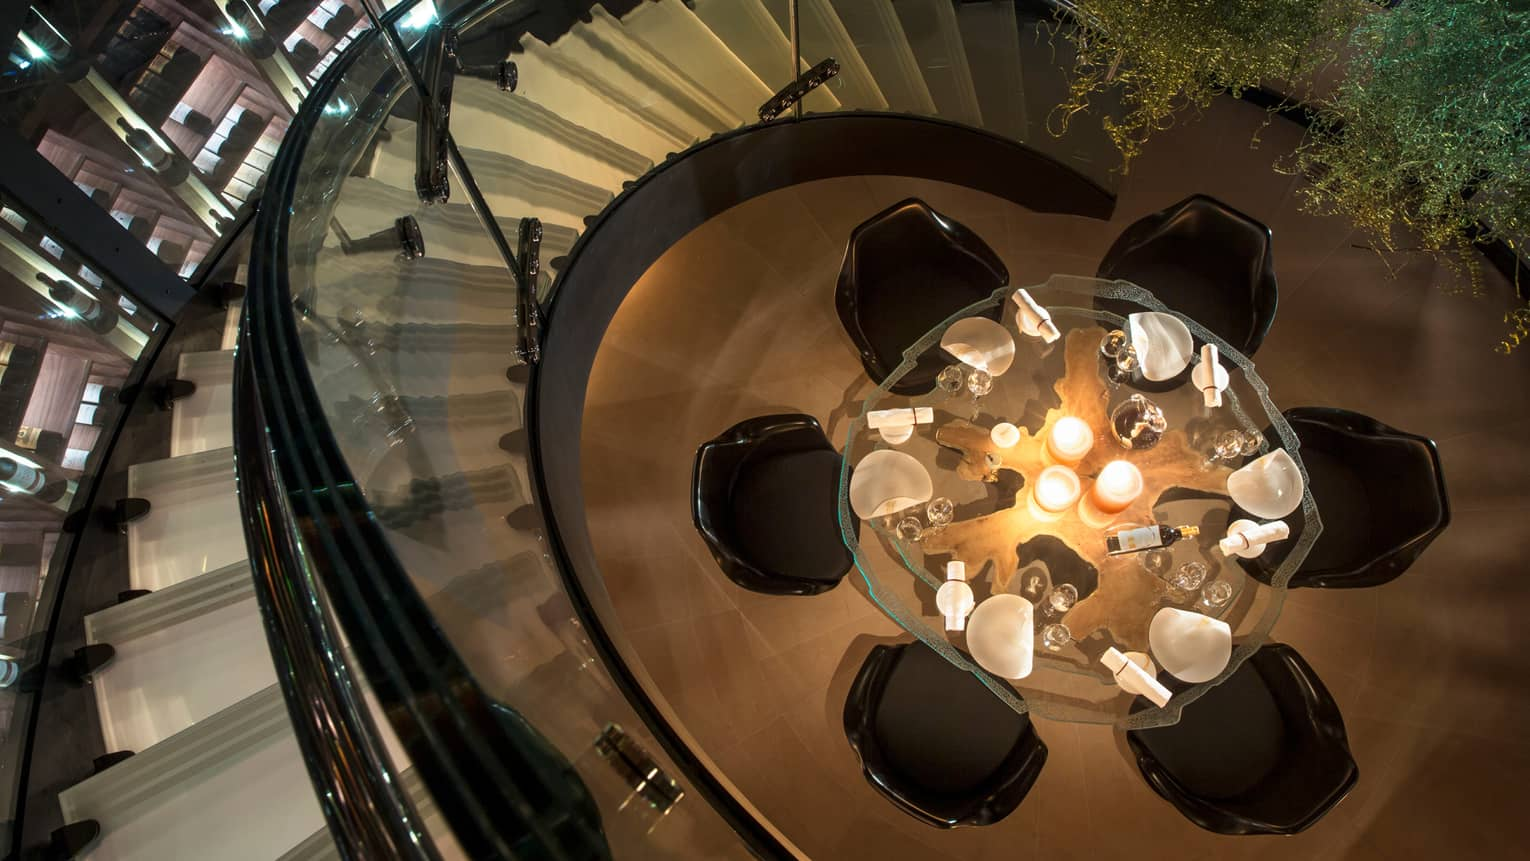 Aerial view of round glass candle-lit dining table, chairs from spiral staircase